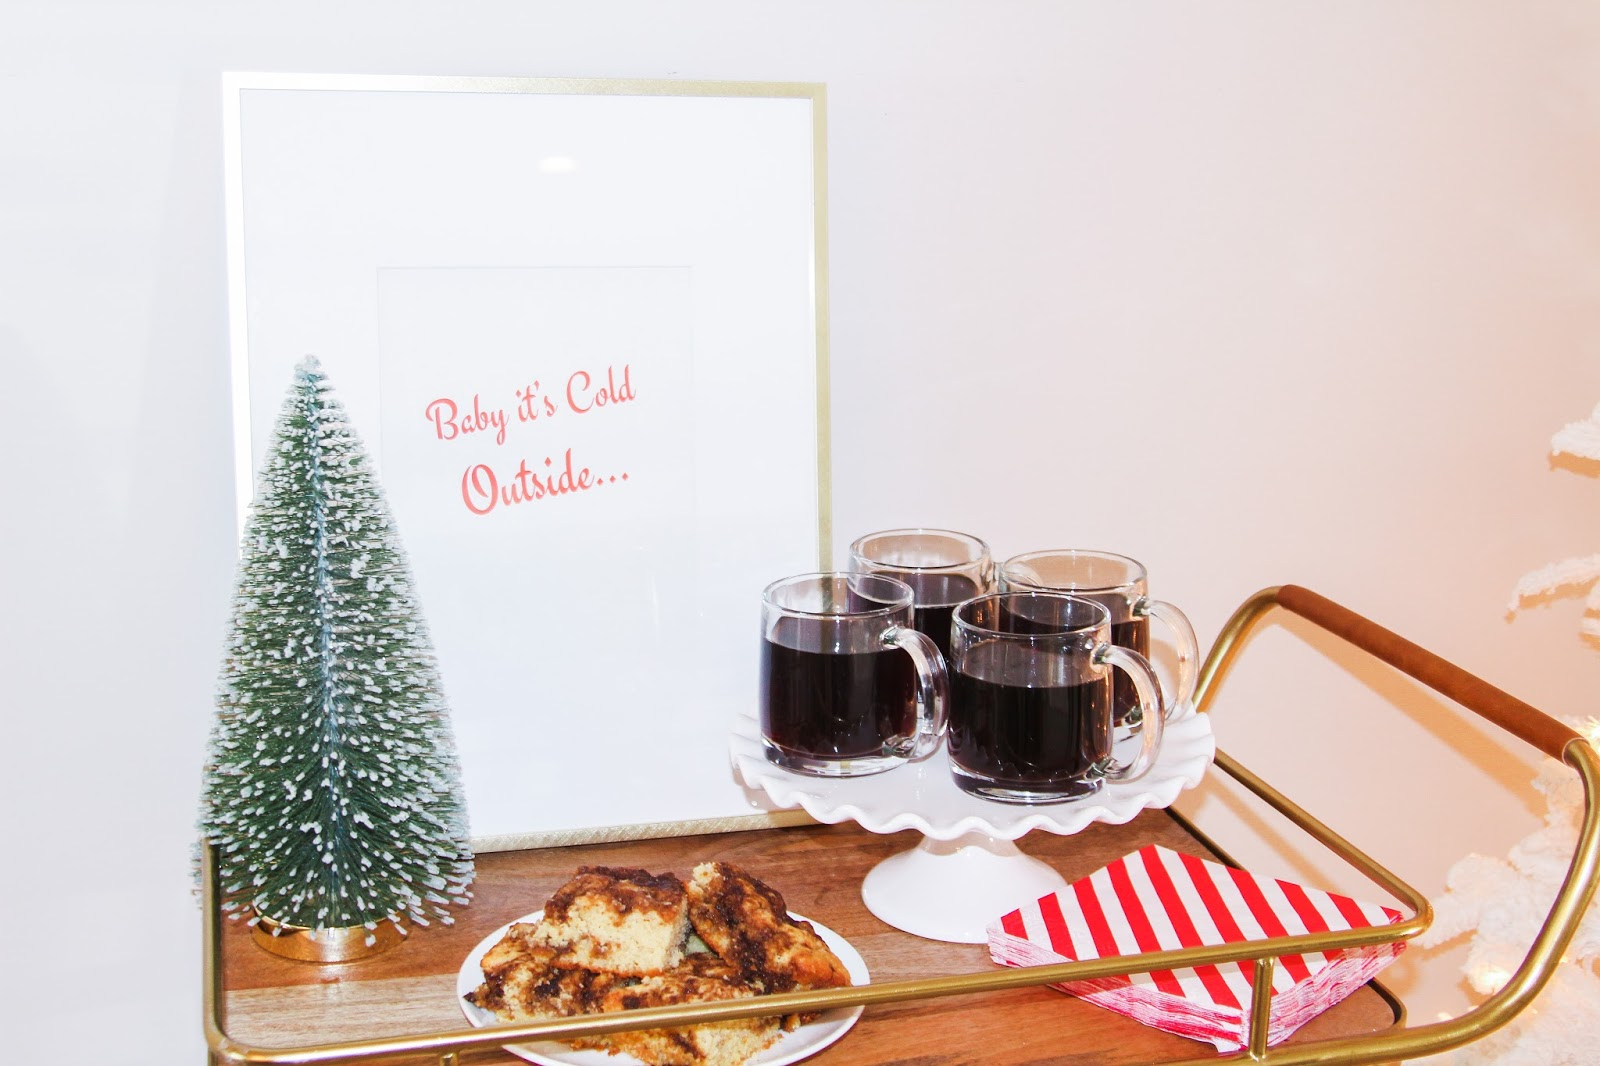 Christmas Coffee Cart Ideas  by popular Florida party blogger The Celebration Stylist